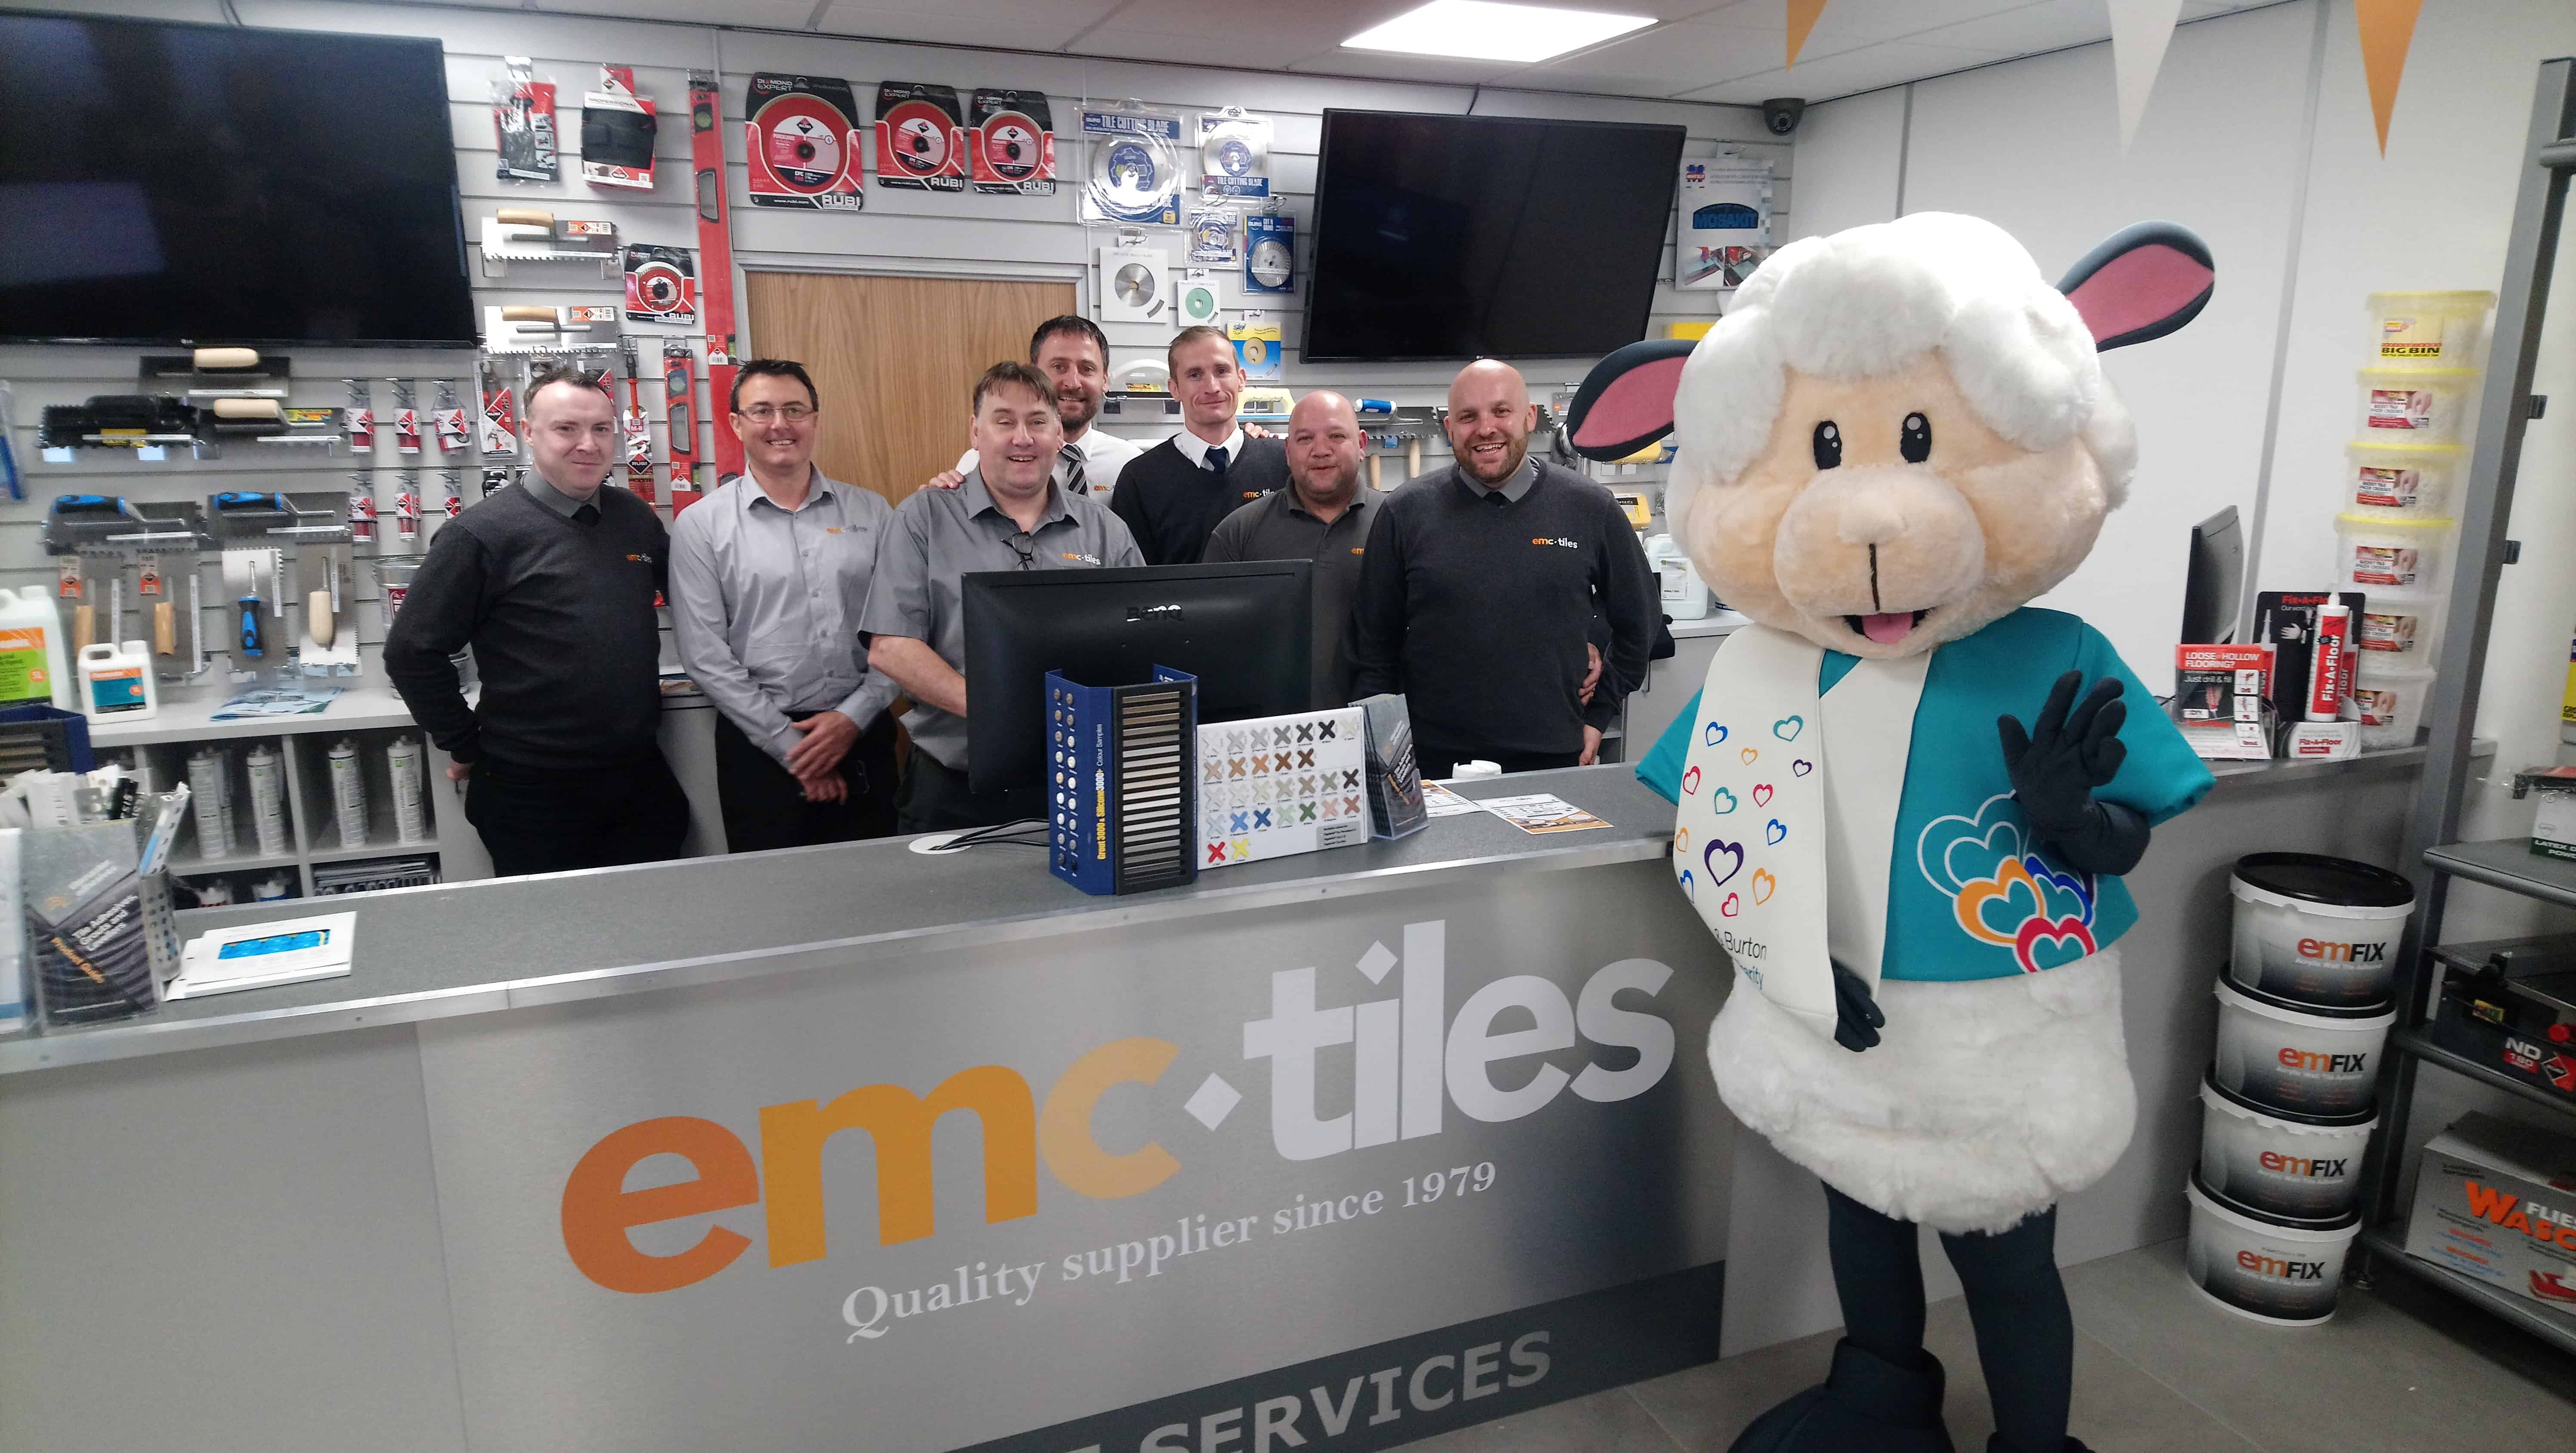 emc tiles community charity work about us derby opening